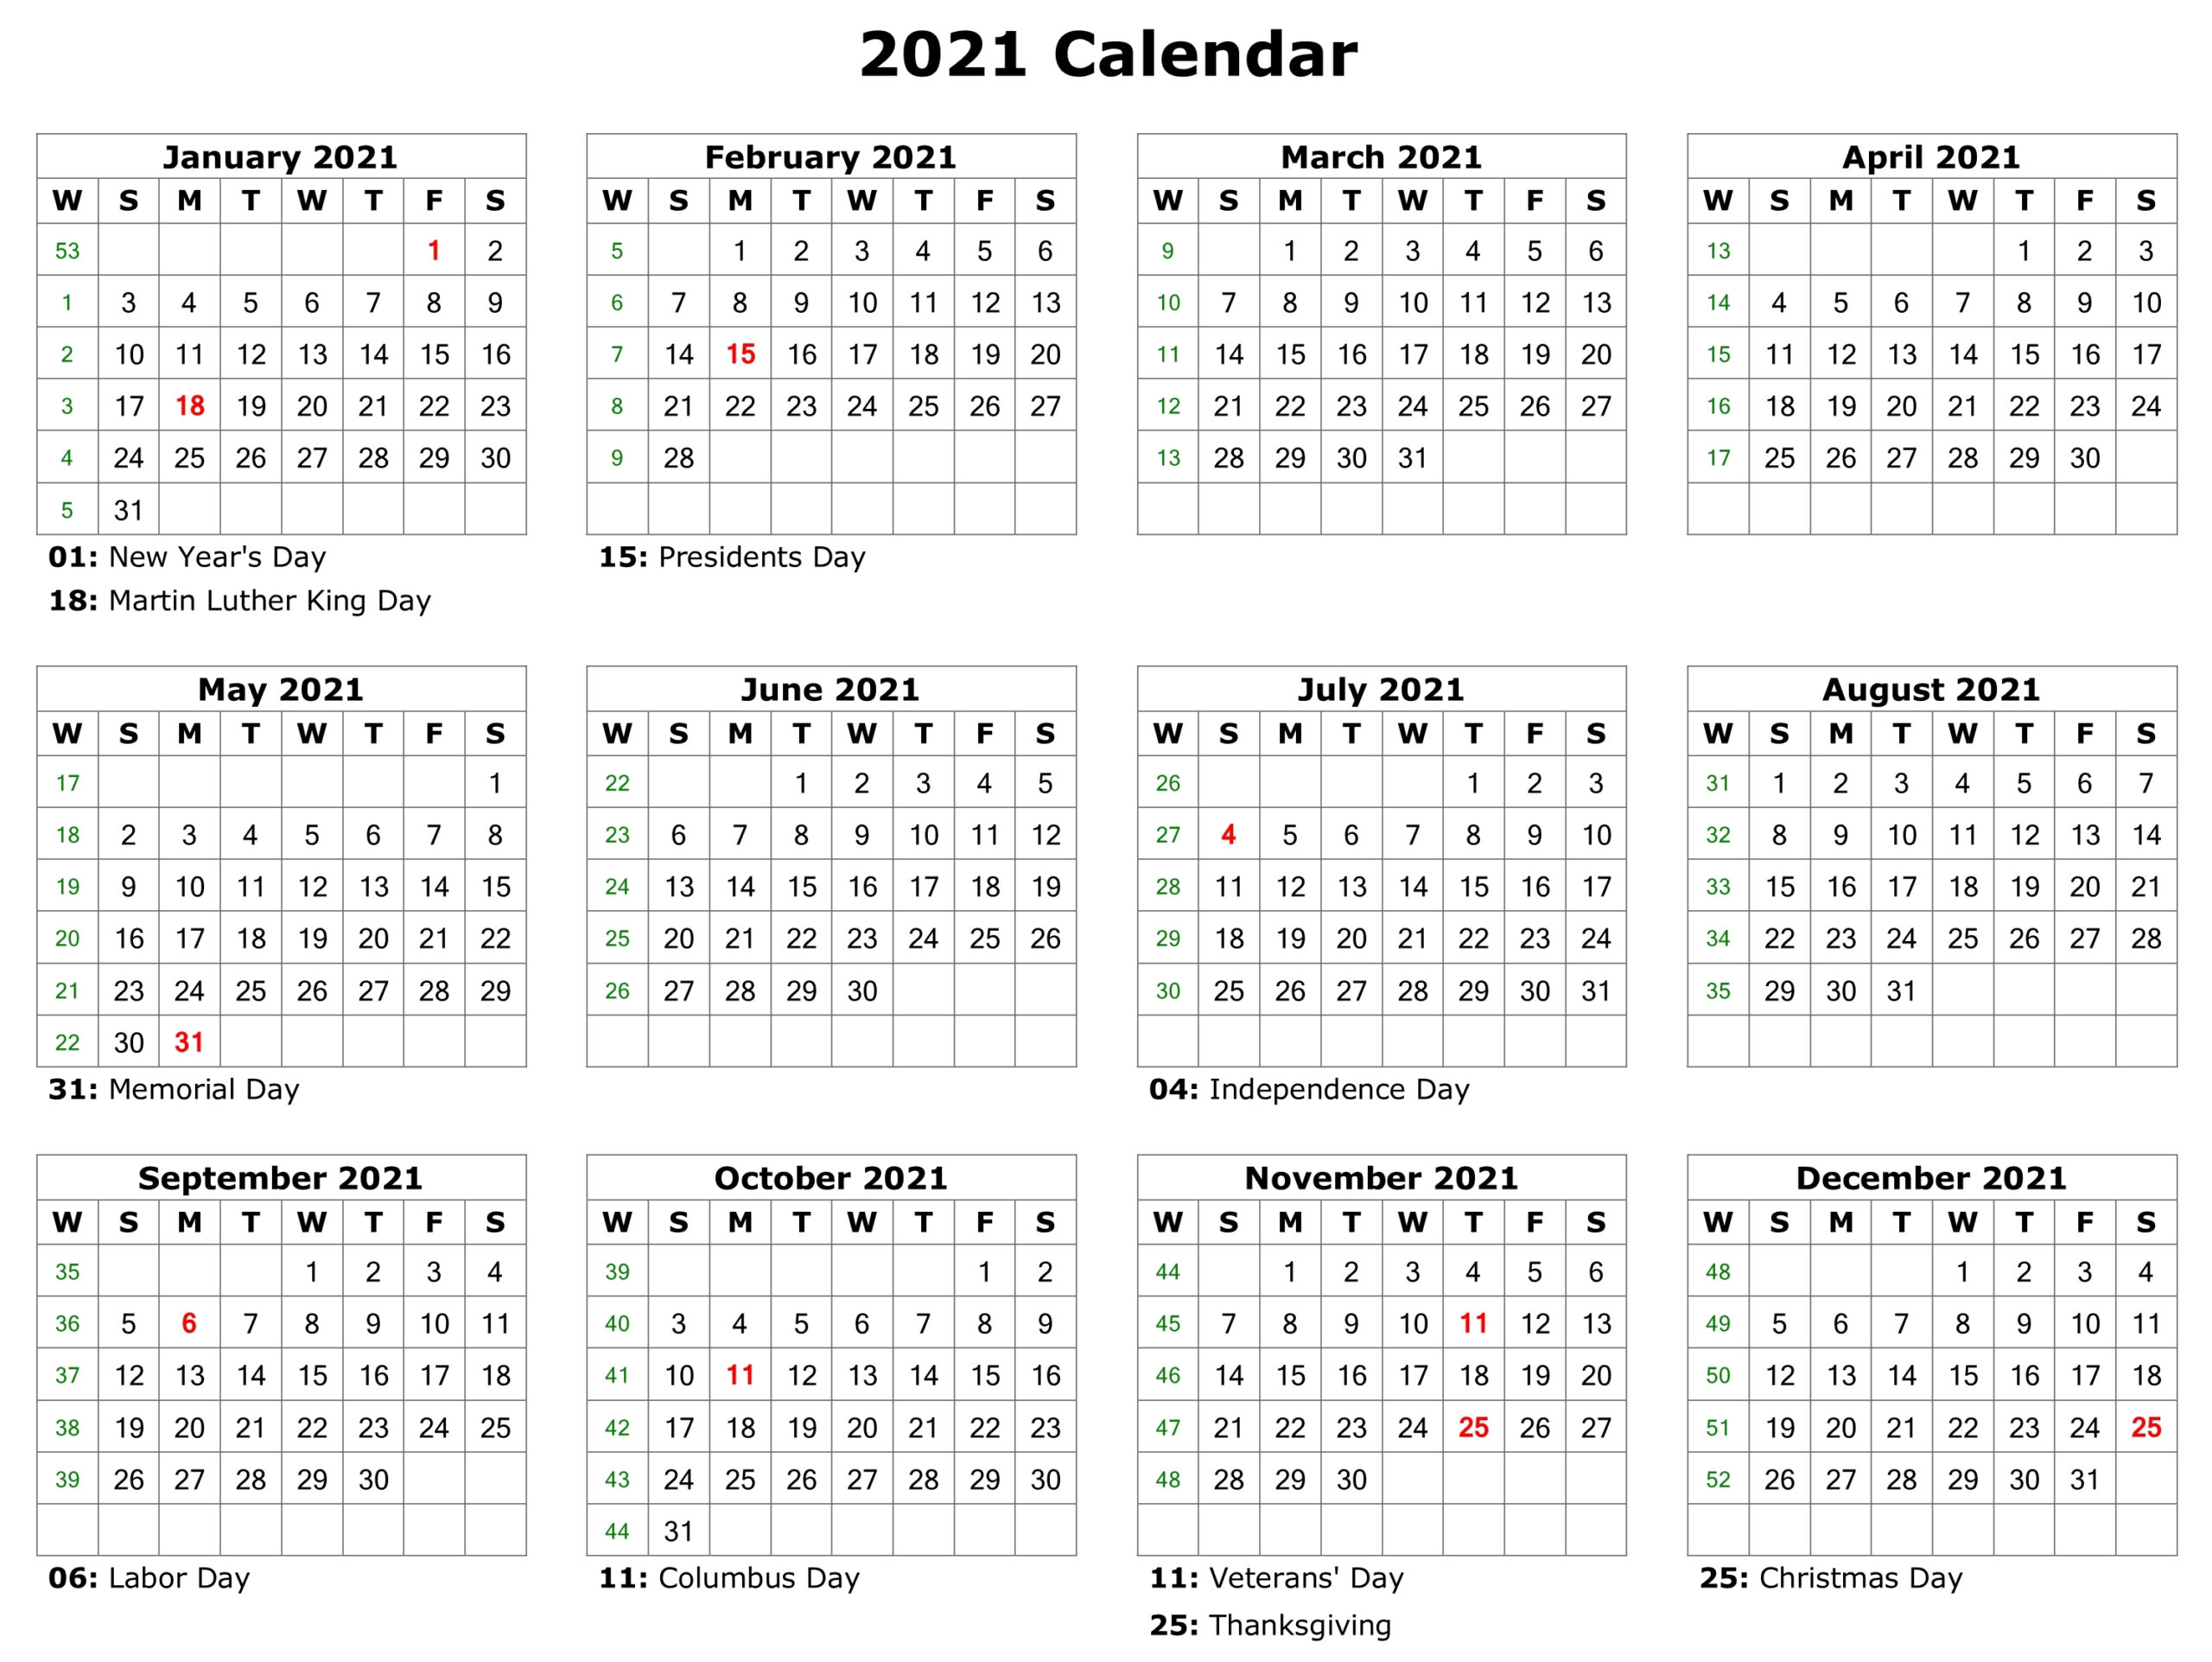 Free Printable 2021 Calendar With Holidays In Word | Free ...